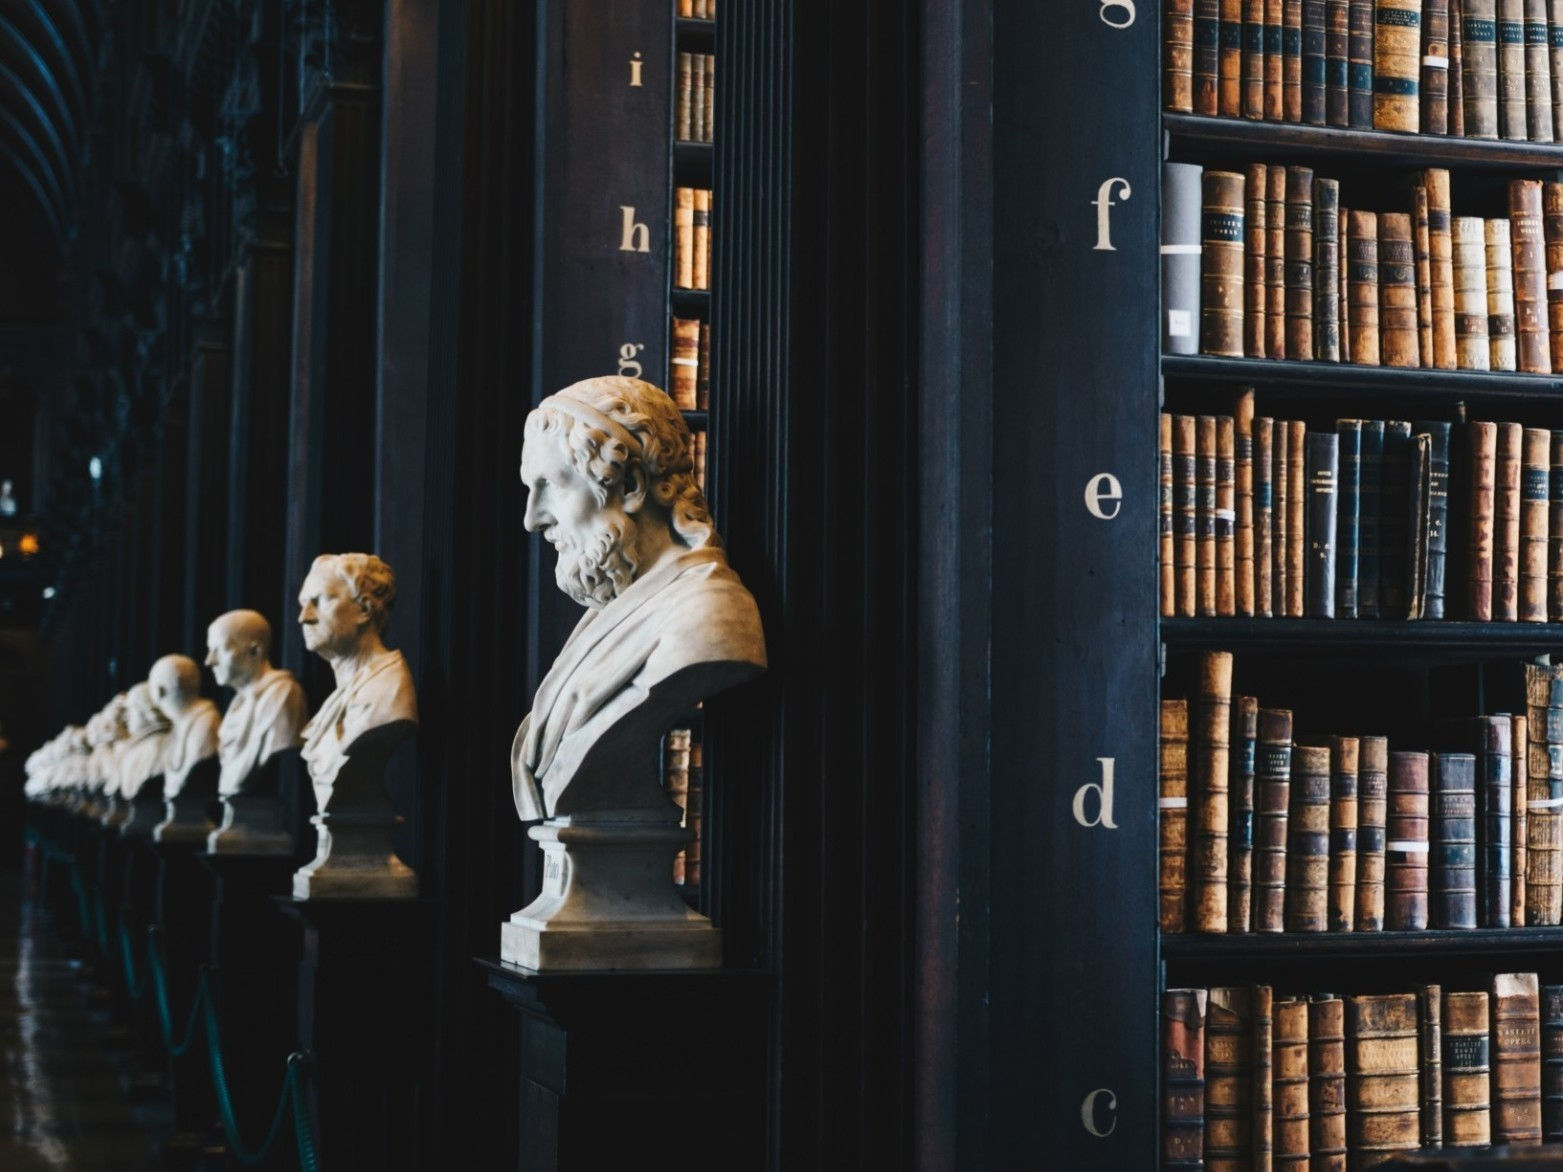 busts of notable scholars